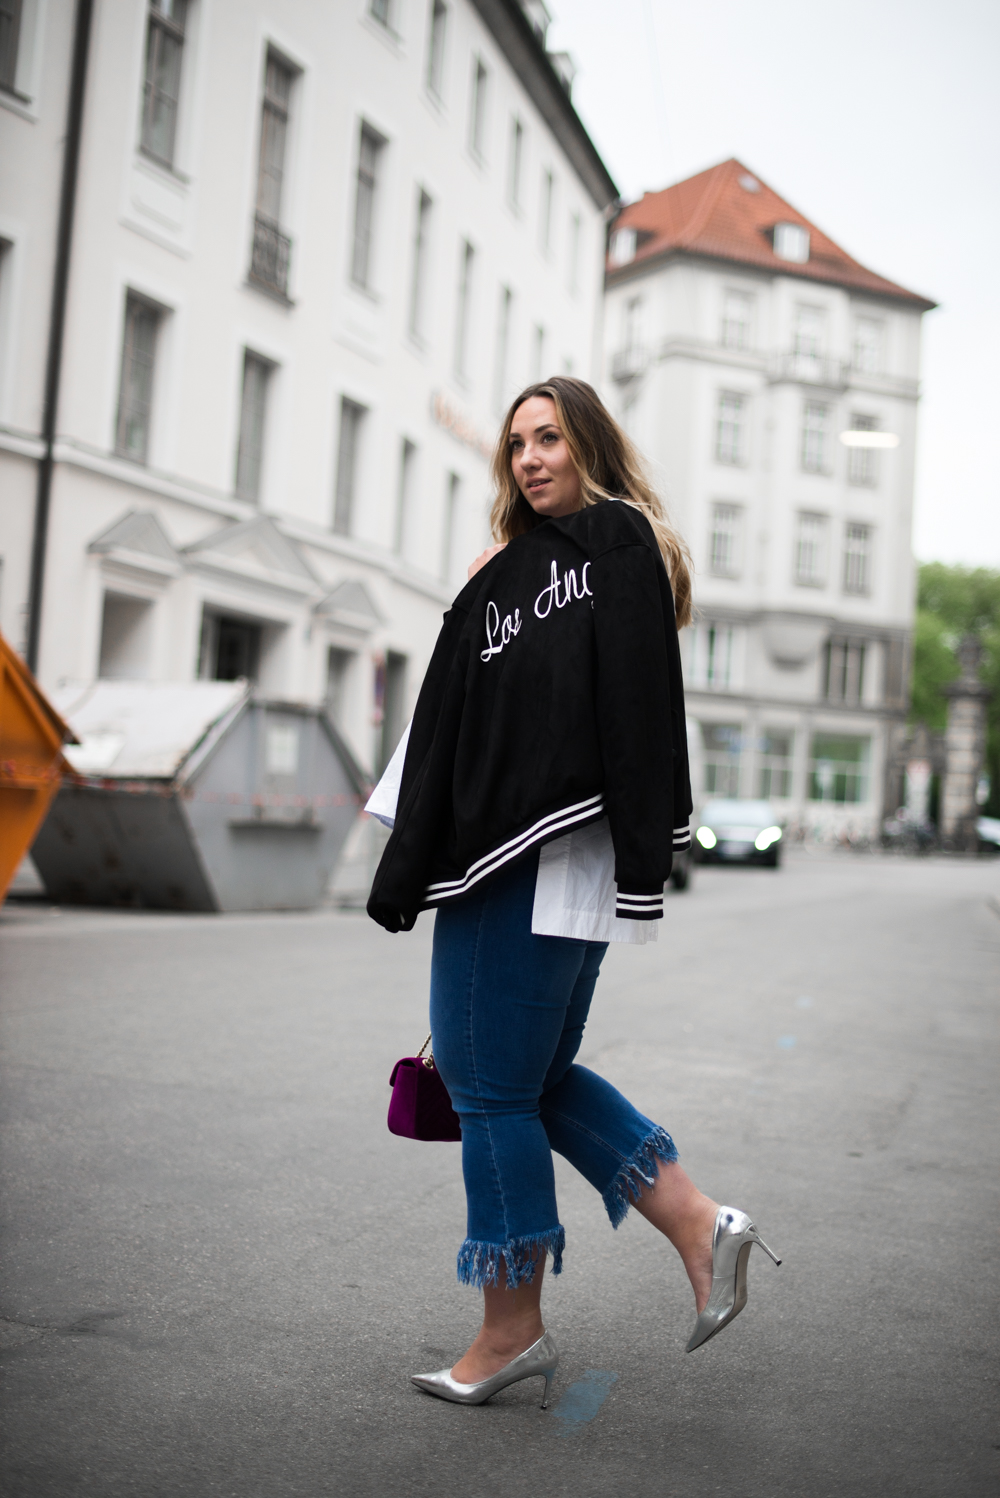 Gucci_The Skinny and the Curvy One_Ms wunderbar_Plus Size Blogger_curve blog_Fashionblog Deutschland_Plus Size Fashion Deutschland_College Jacke_Fringe Jeans (12 von 15)